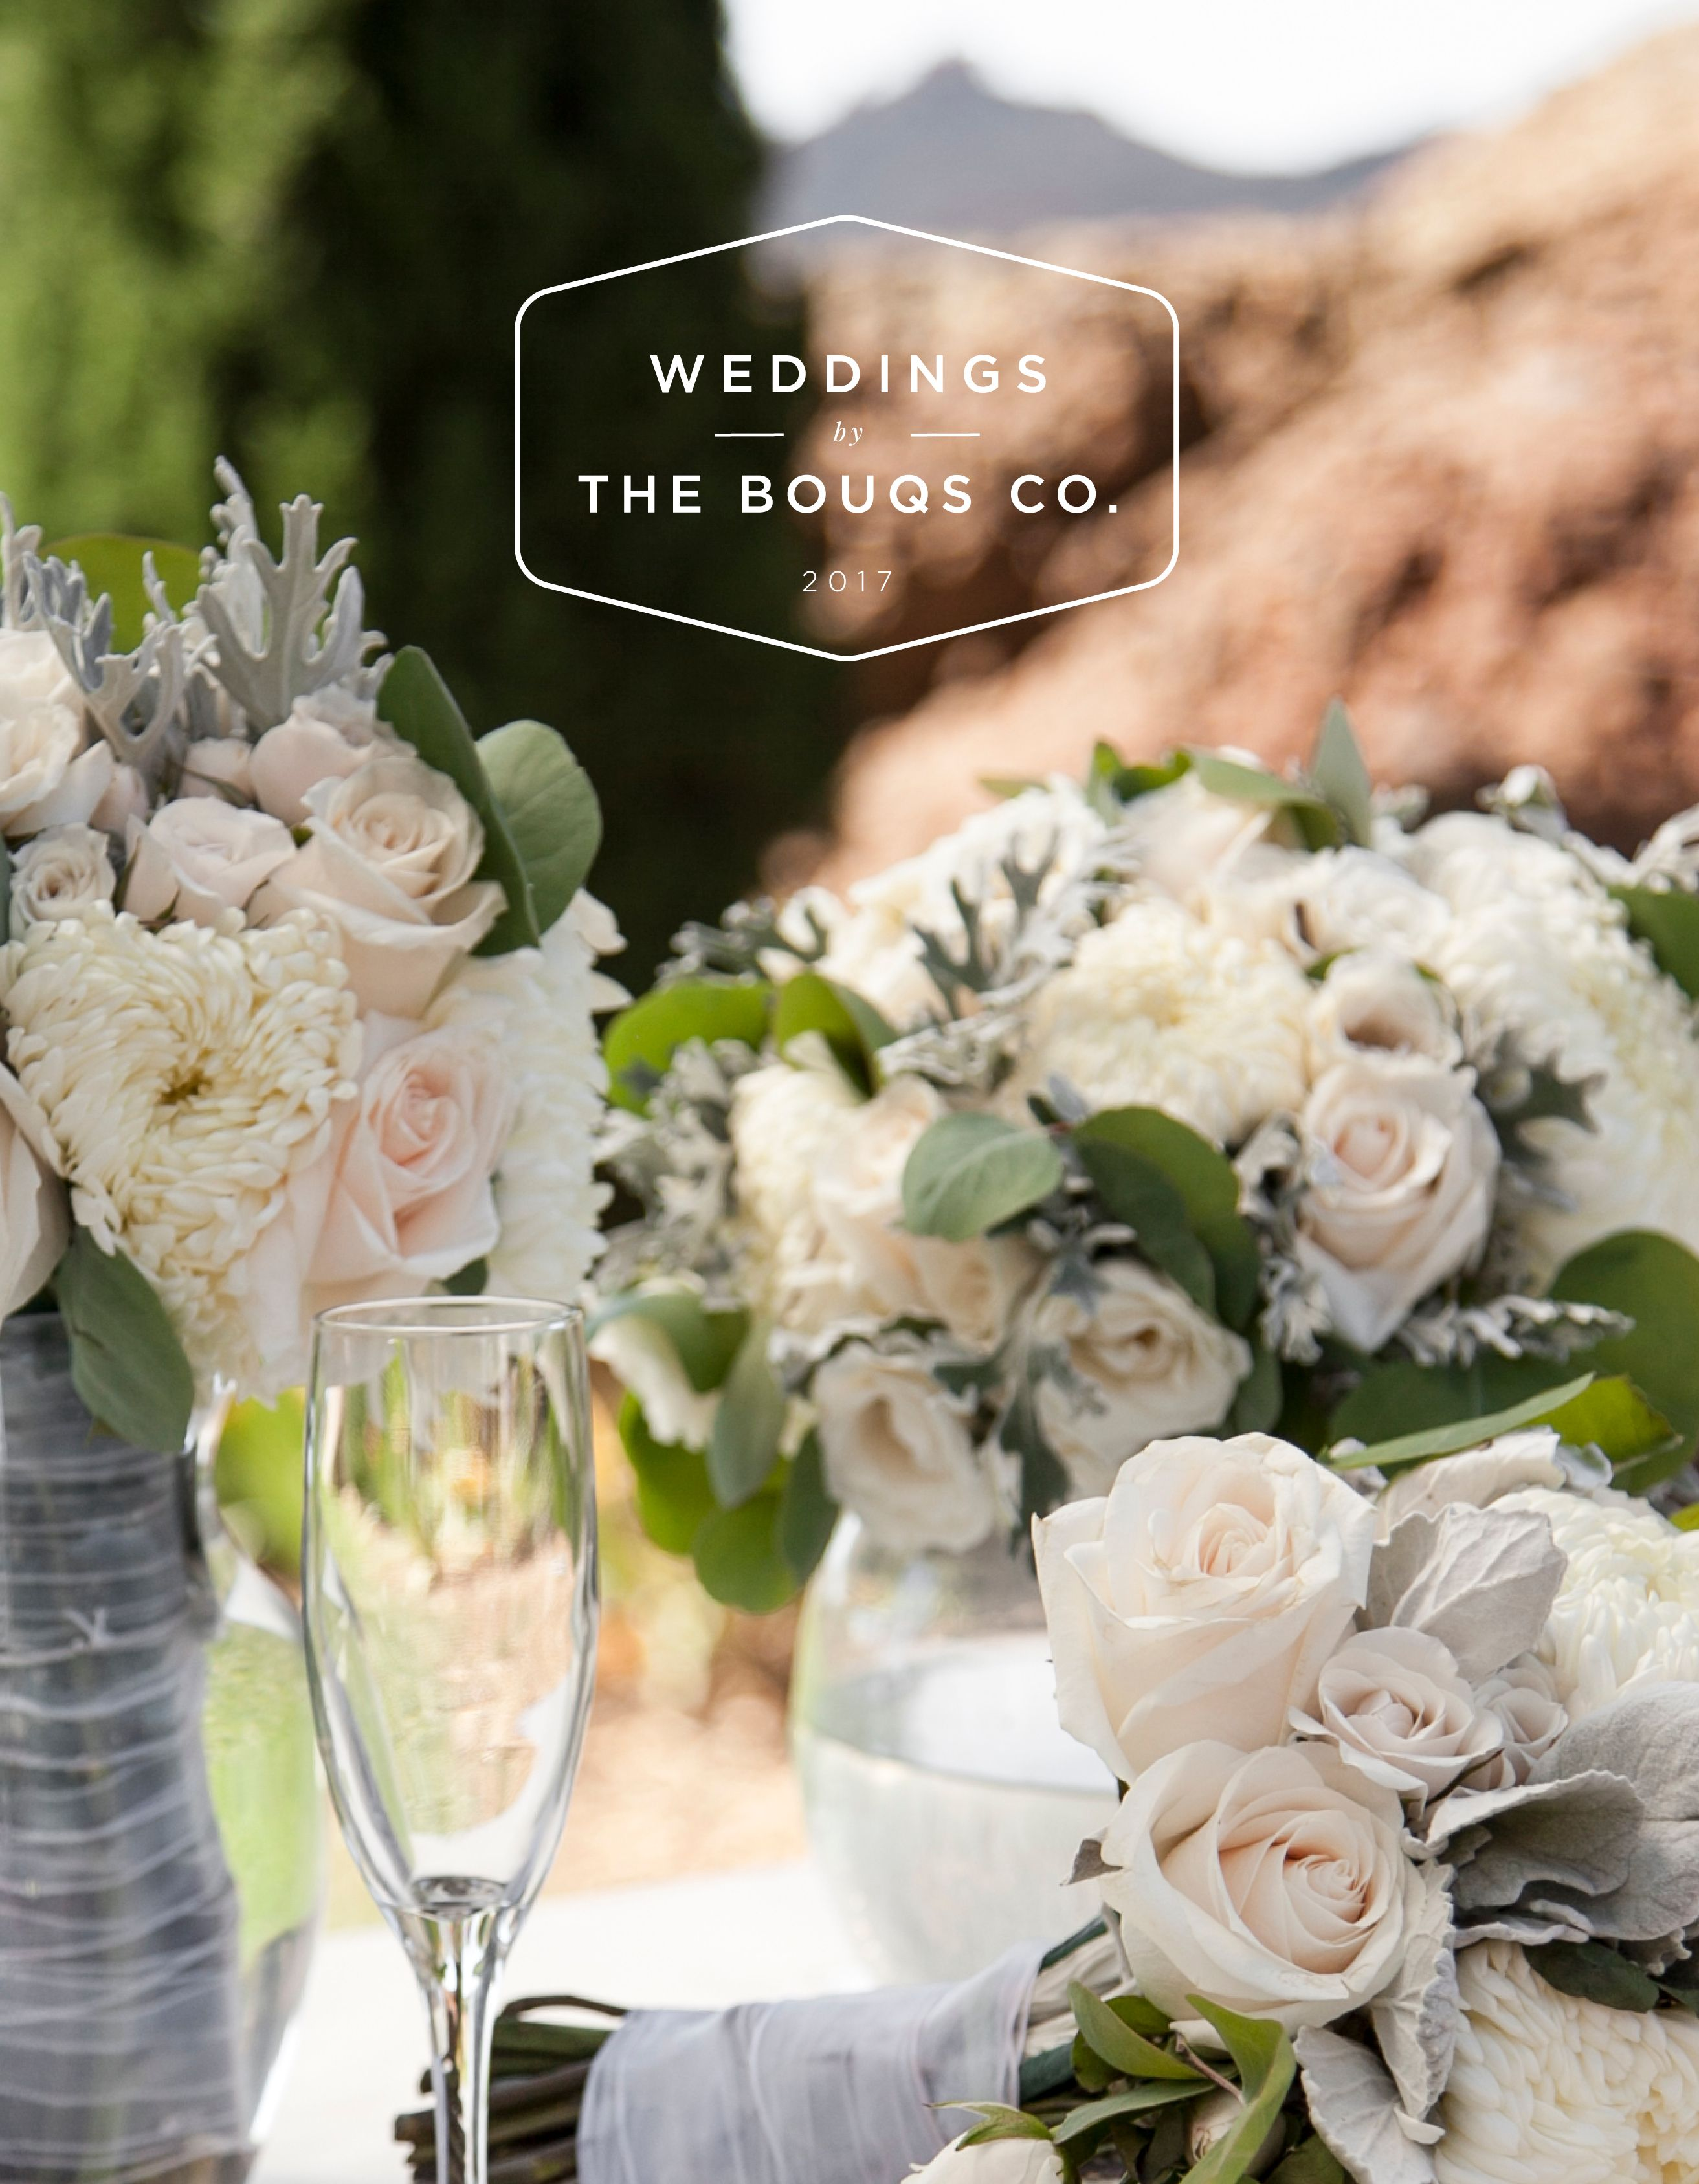 weddings flowers and arrangements - the bouqs company